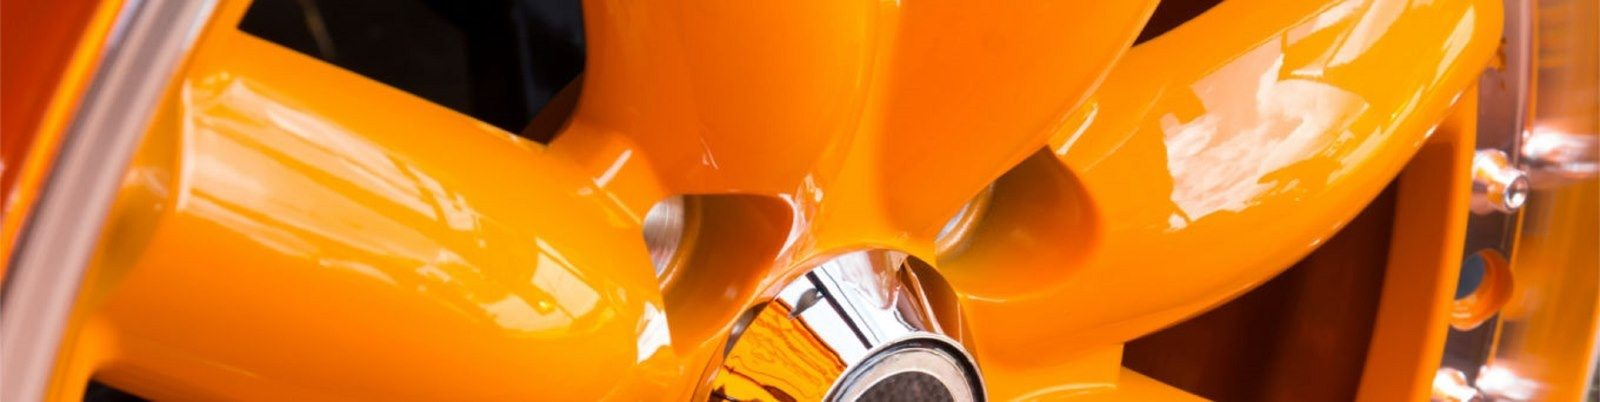 Coatings for automotive components